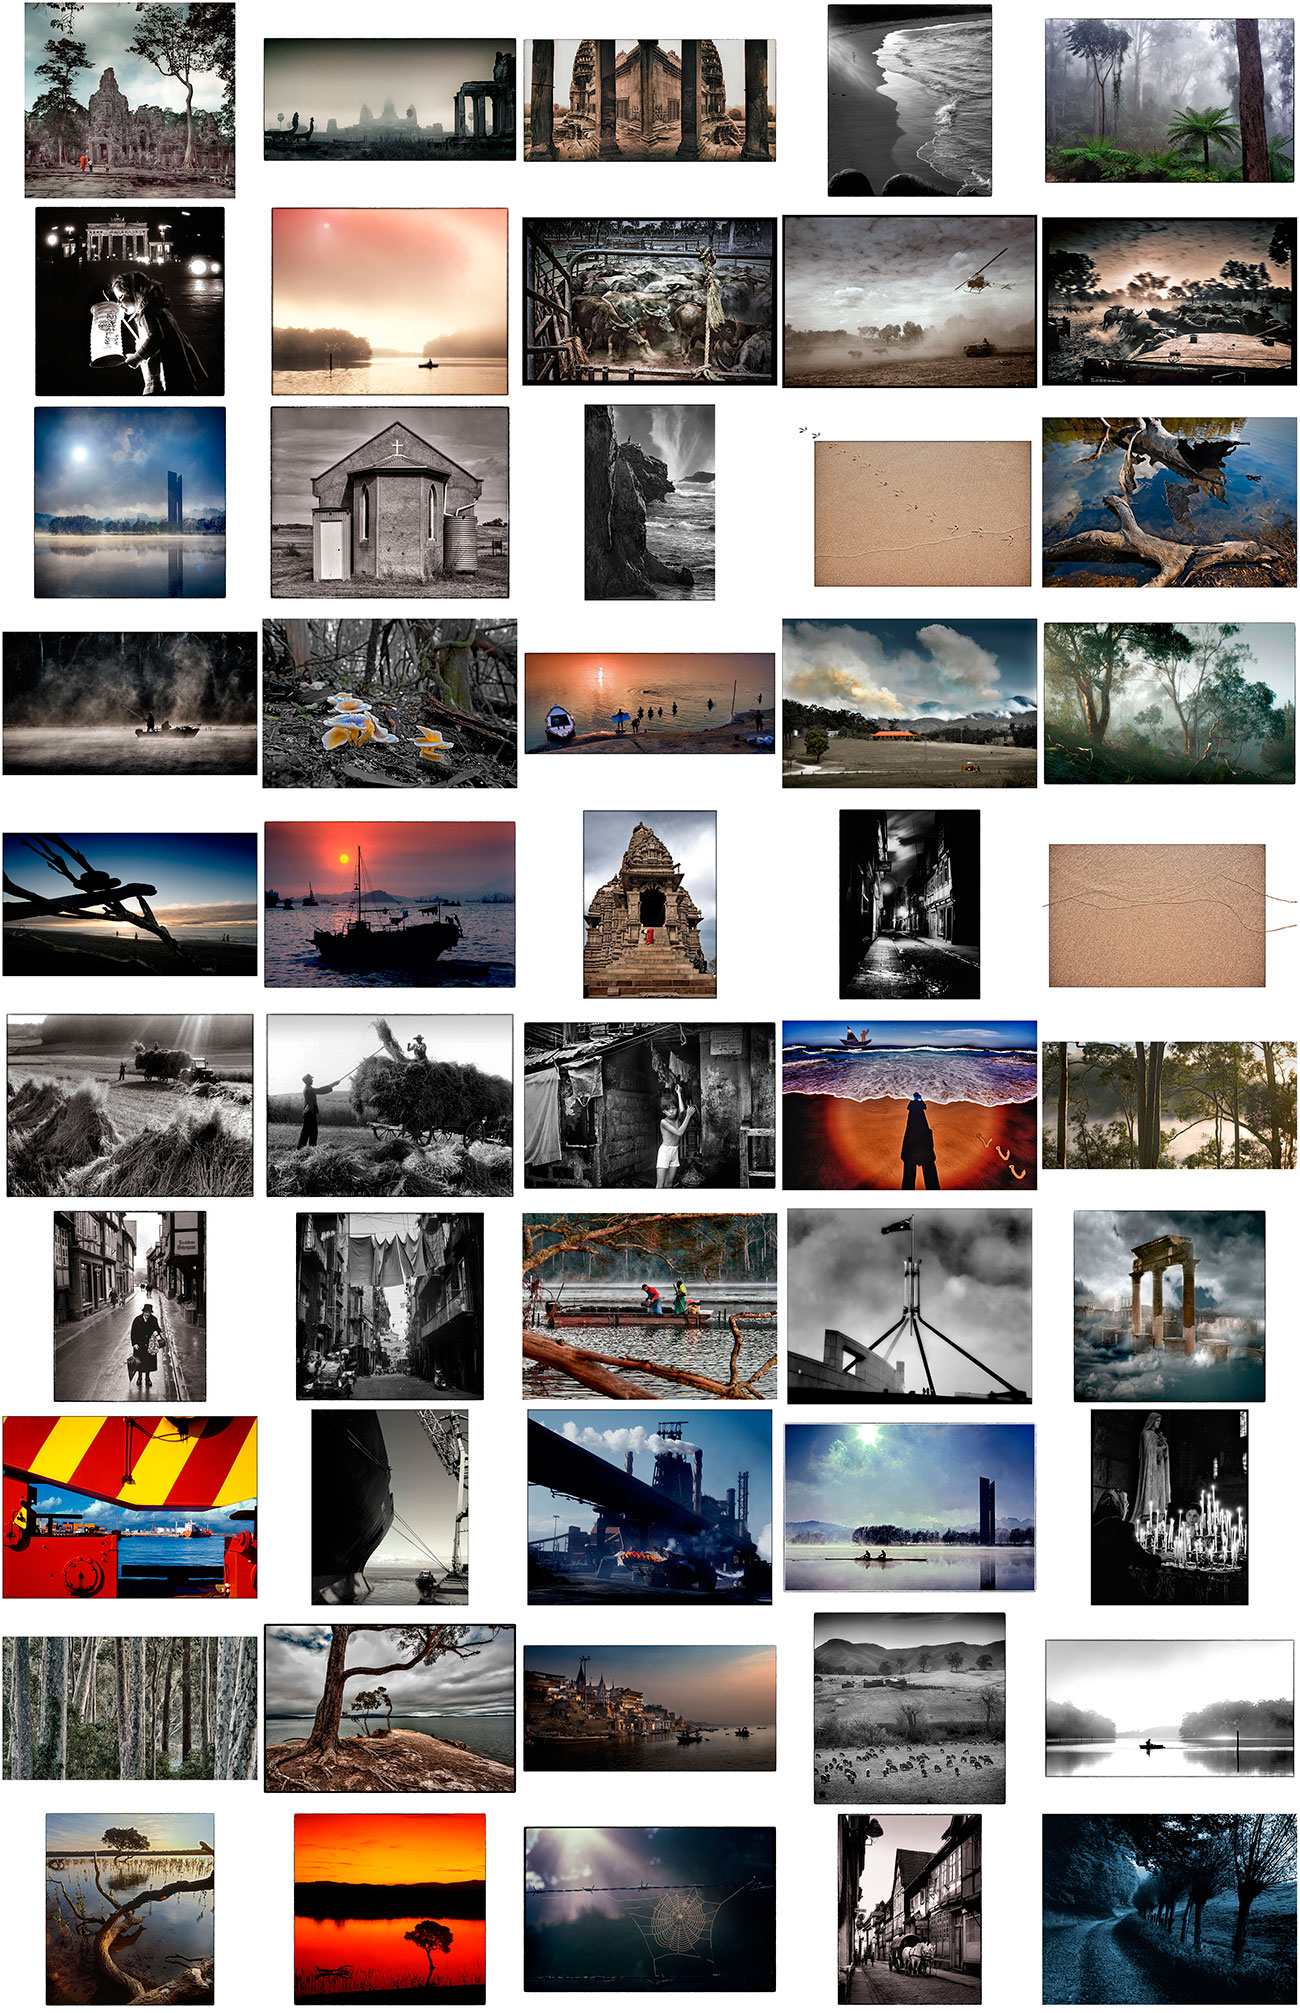 Contact sheet for Limited Edition Landscape Folio 1/3